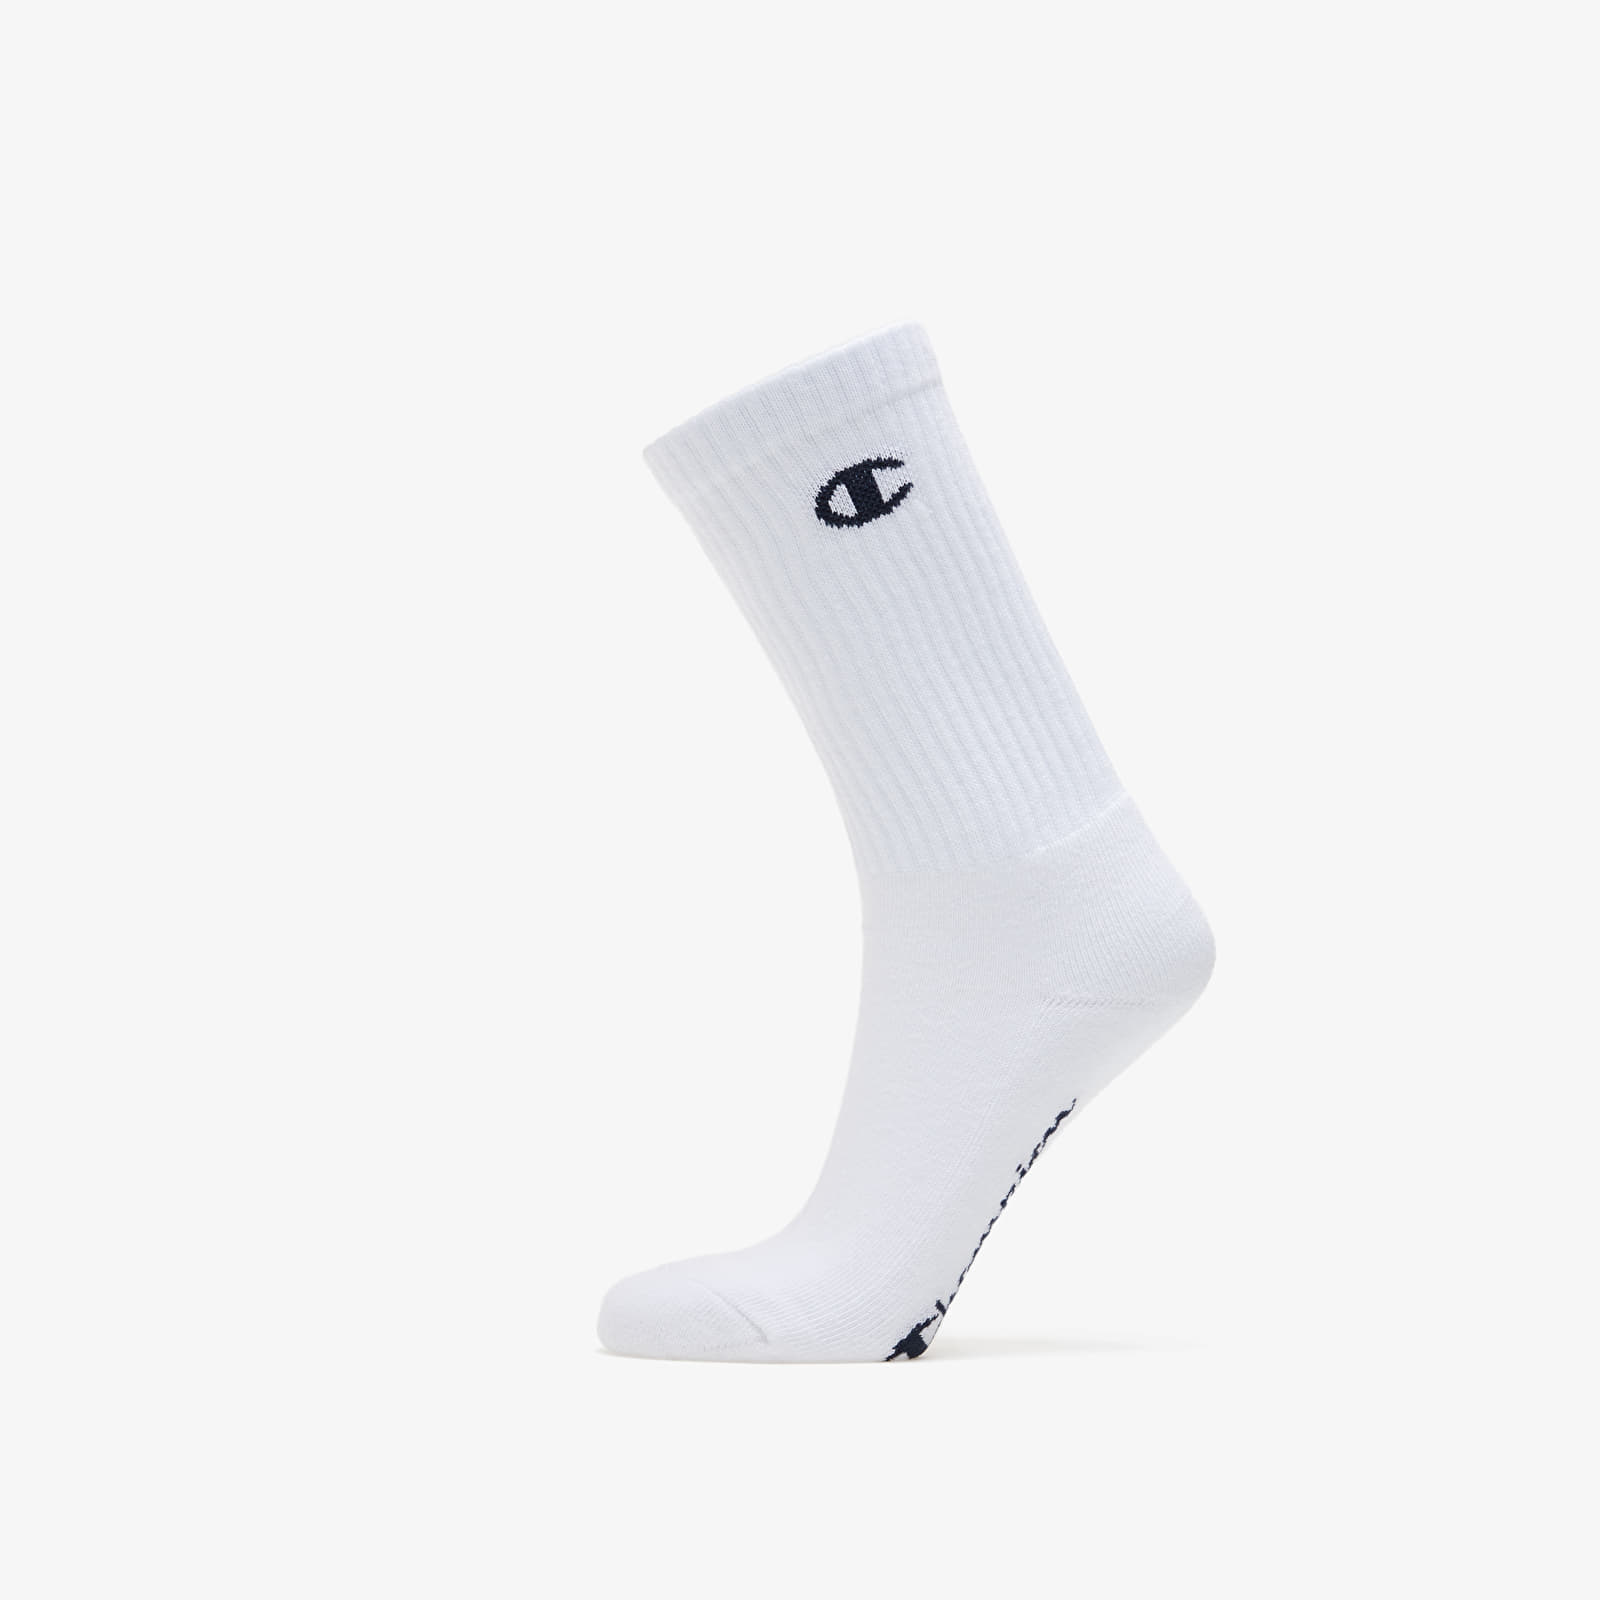 Čarape Champion 3 Pack Socks White